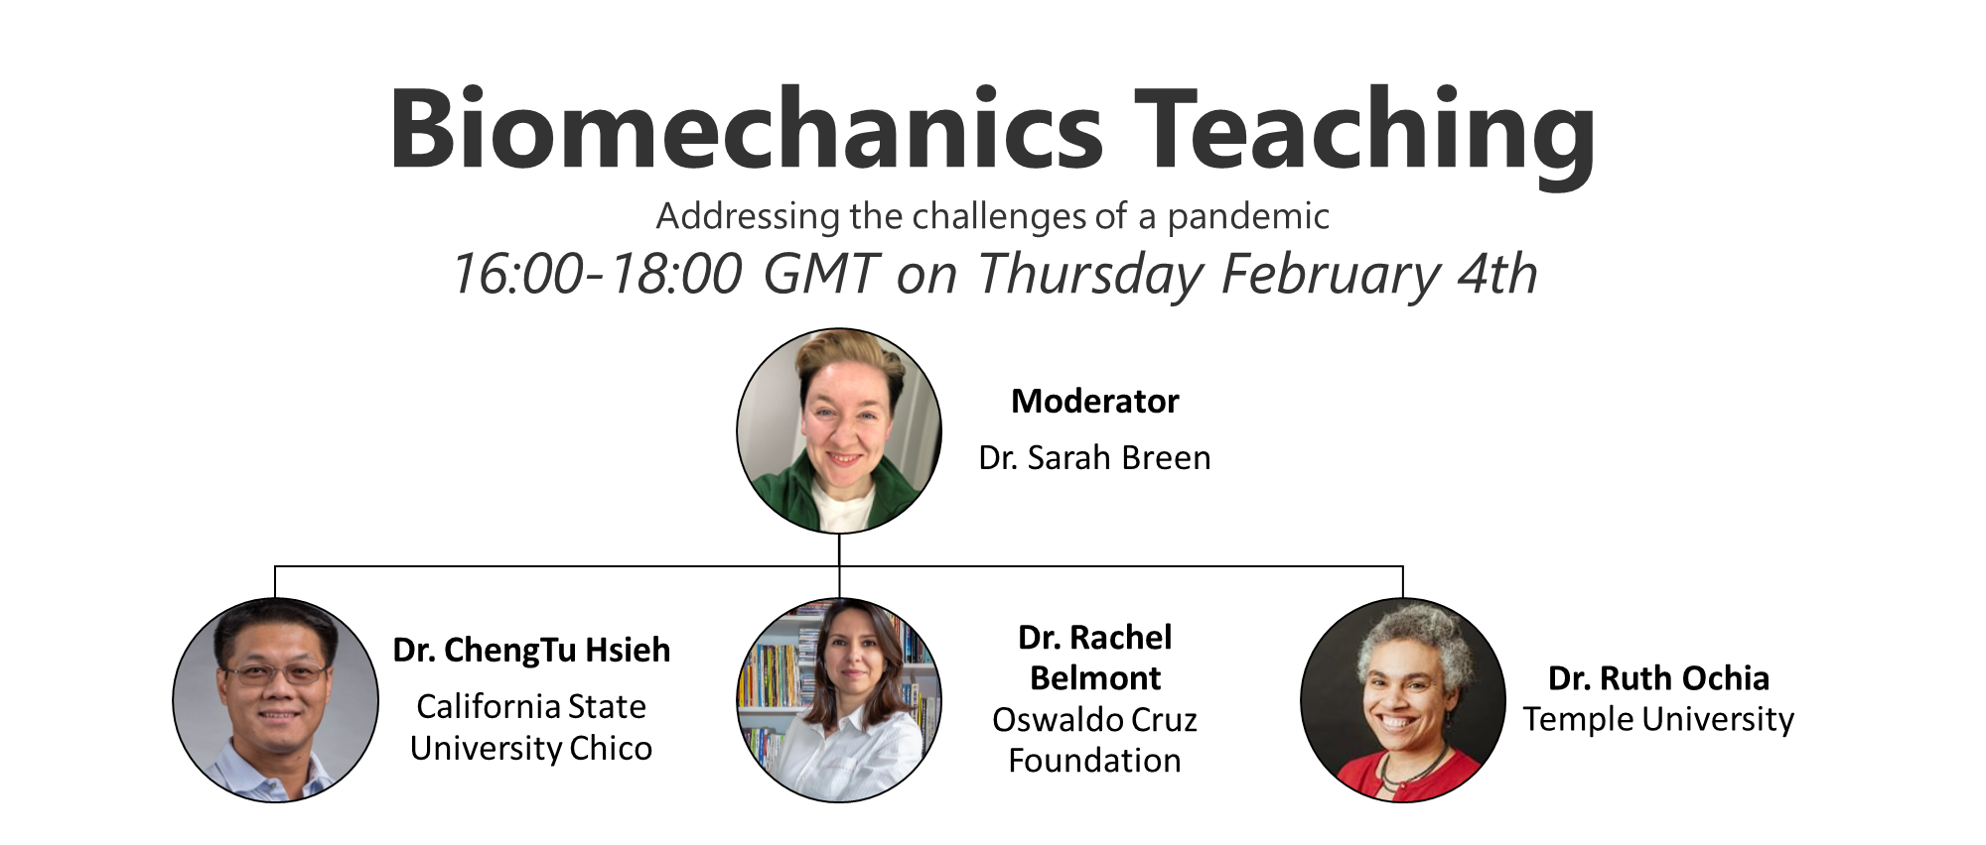 Biomechanics Teaching. Addressing the challenges of a pandemic. 16:00-18:00 GMT on Thursday February 4th. Moderator Dr Sarah Breen. Speakers: Dr. ChengTu Hsieh California State University Chico, Dr. Rachel Belmont Oswaldo Cruz Foundation, Dr. Ruth Ochia Temple University.